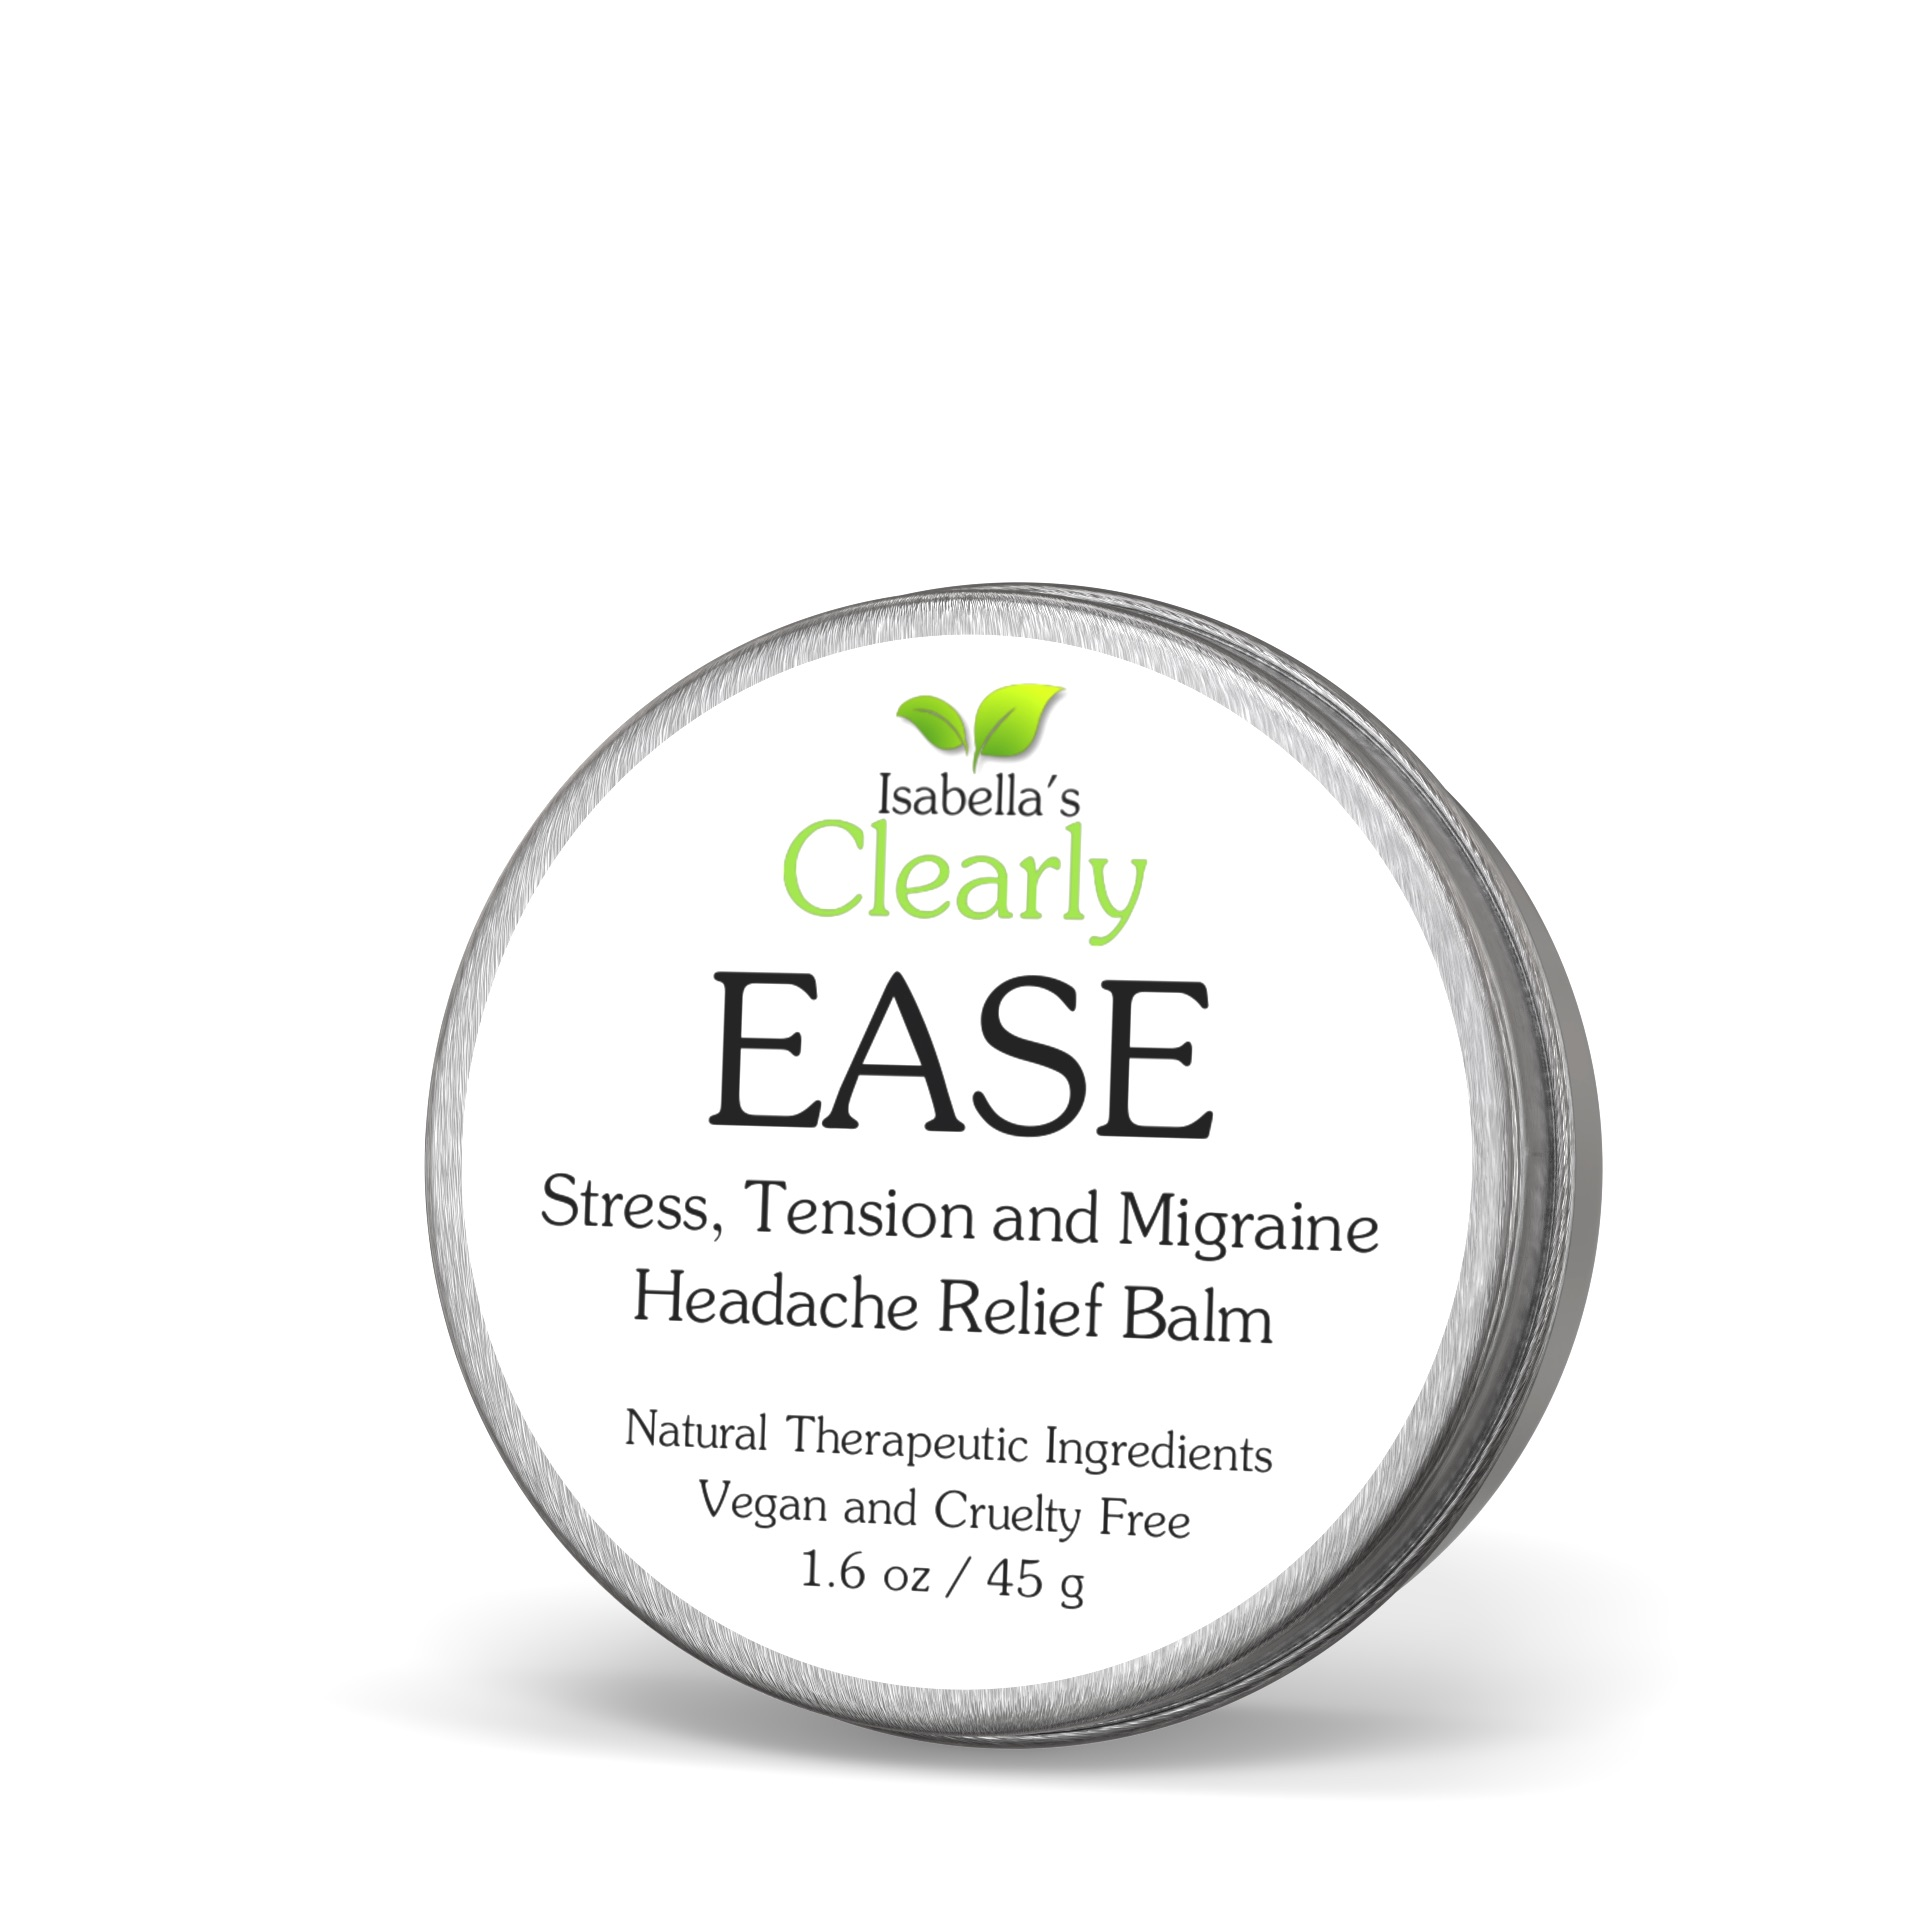 Clearly EASE, Headache and Migraine Relief Balm